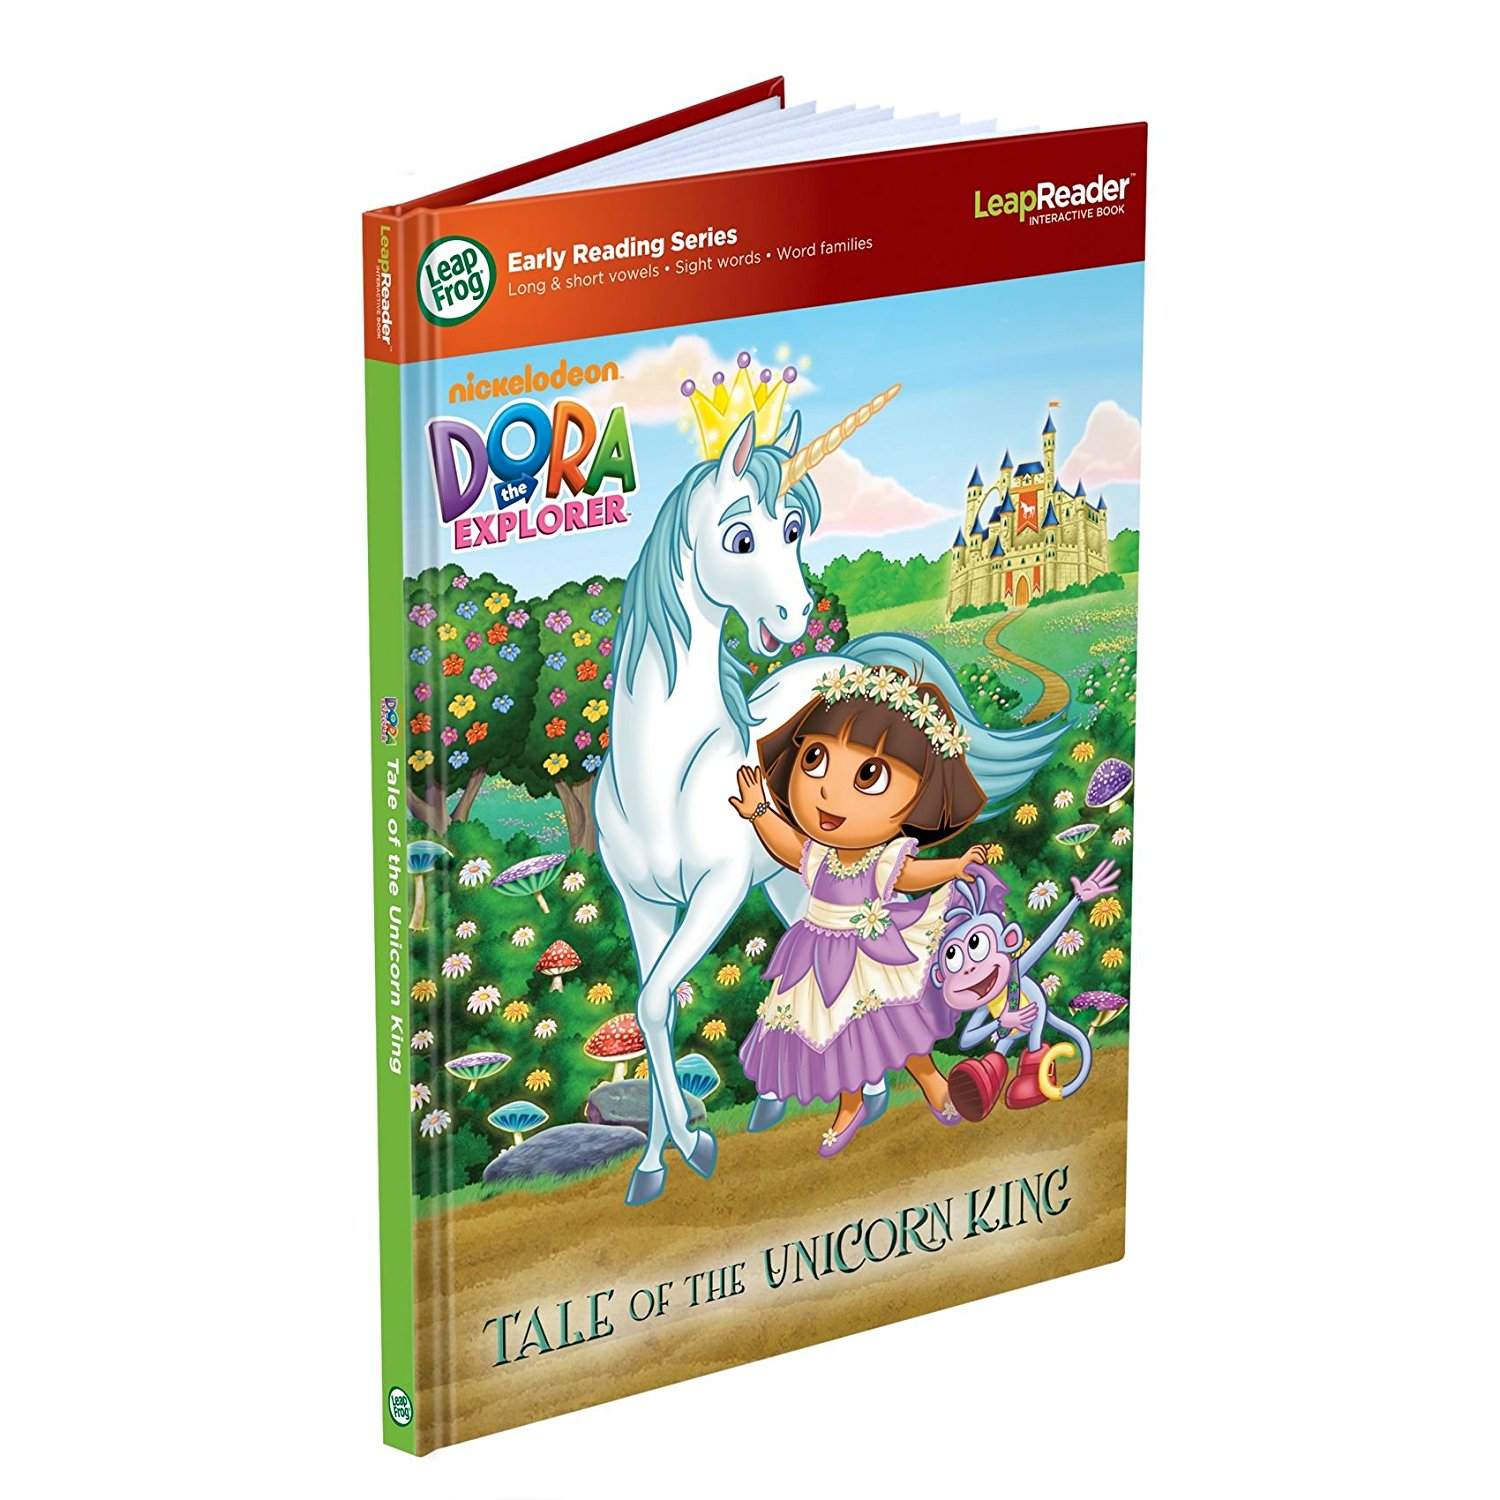 LeapFrog LeapReader Early Reading Book: Nickelodeon : Tale of the Unicorn King (works with... by